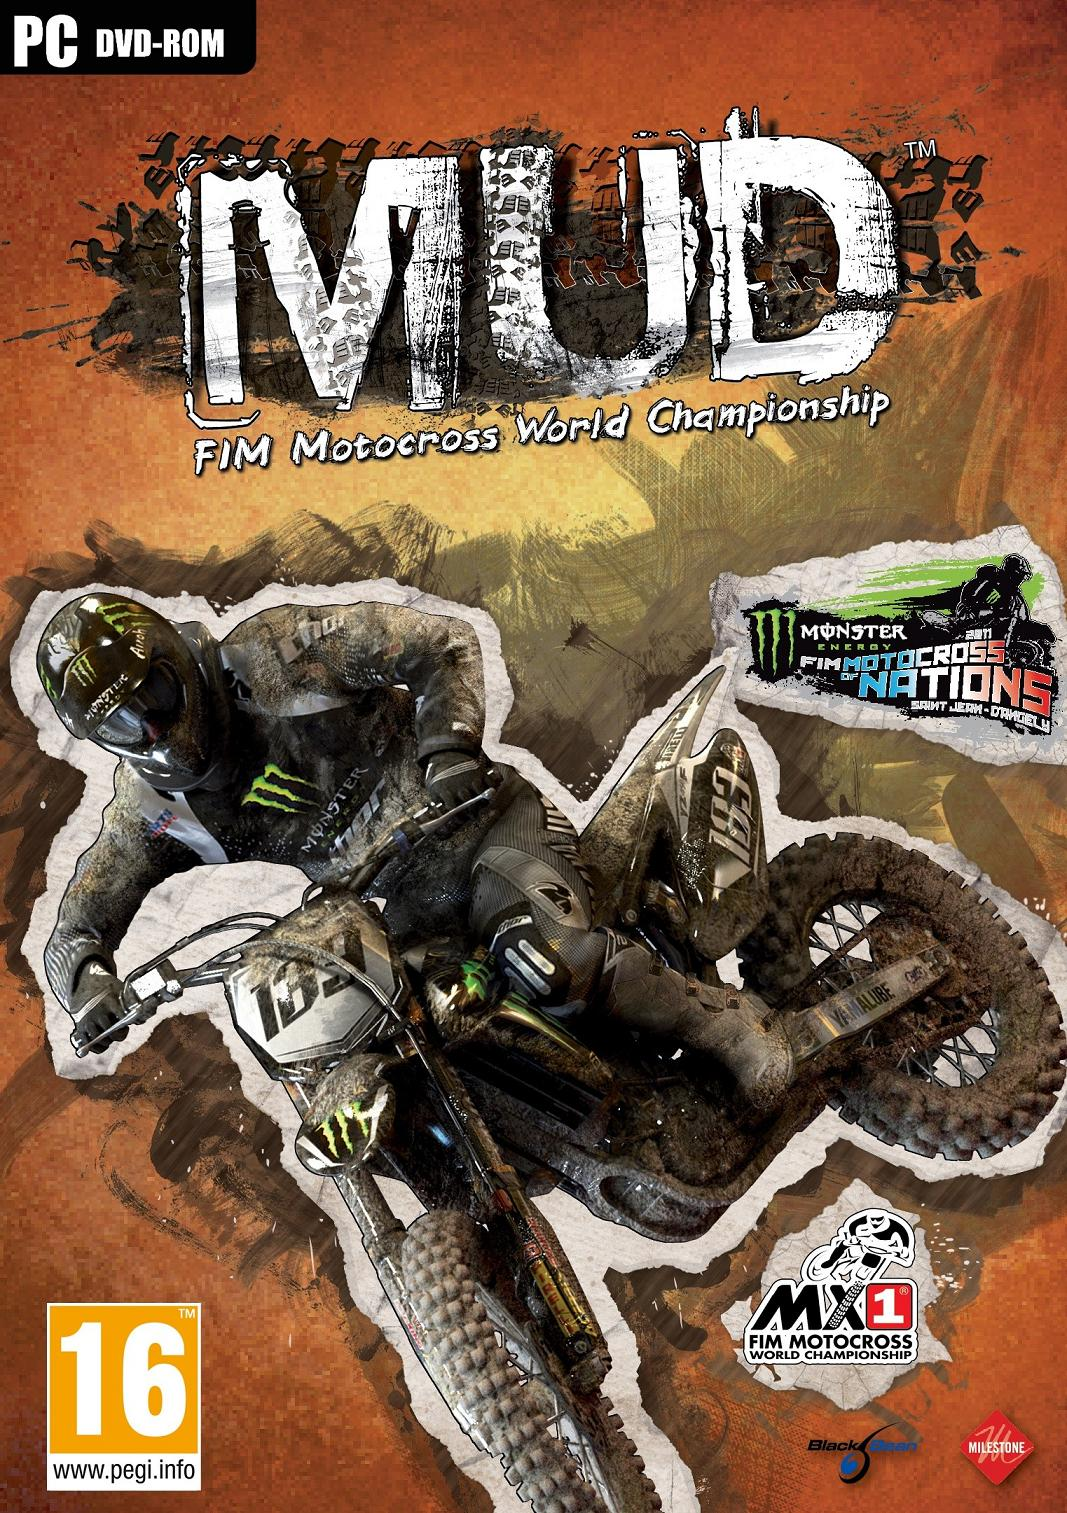 MUD - FIM MOTOCROSS WORLD CHAMPIONSHIP - PC